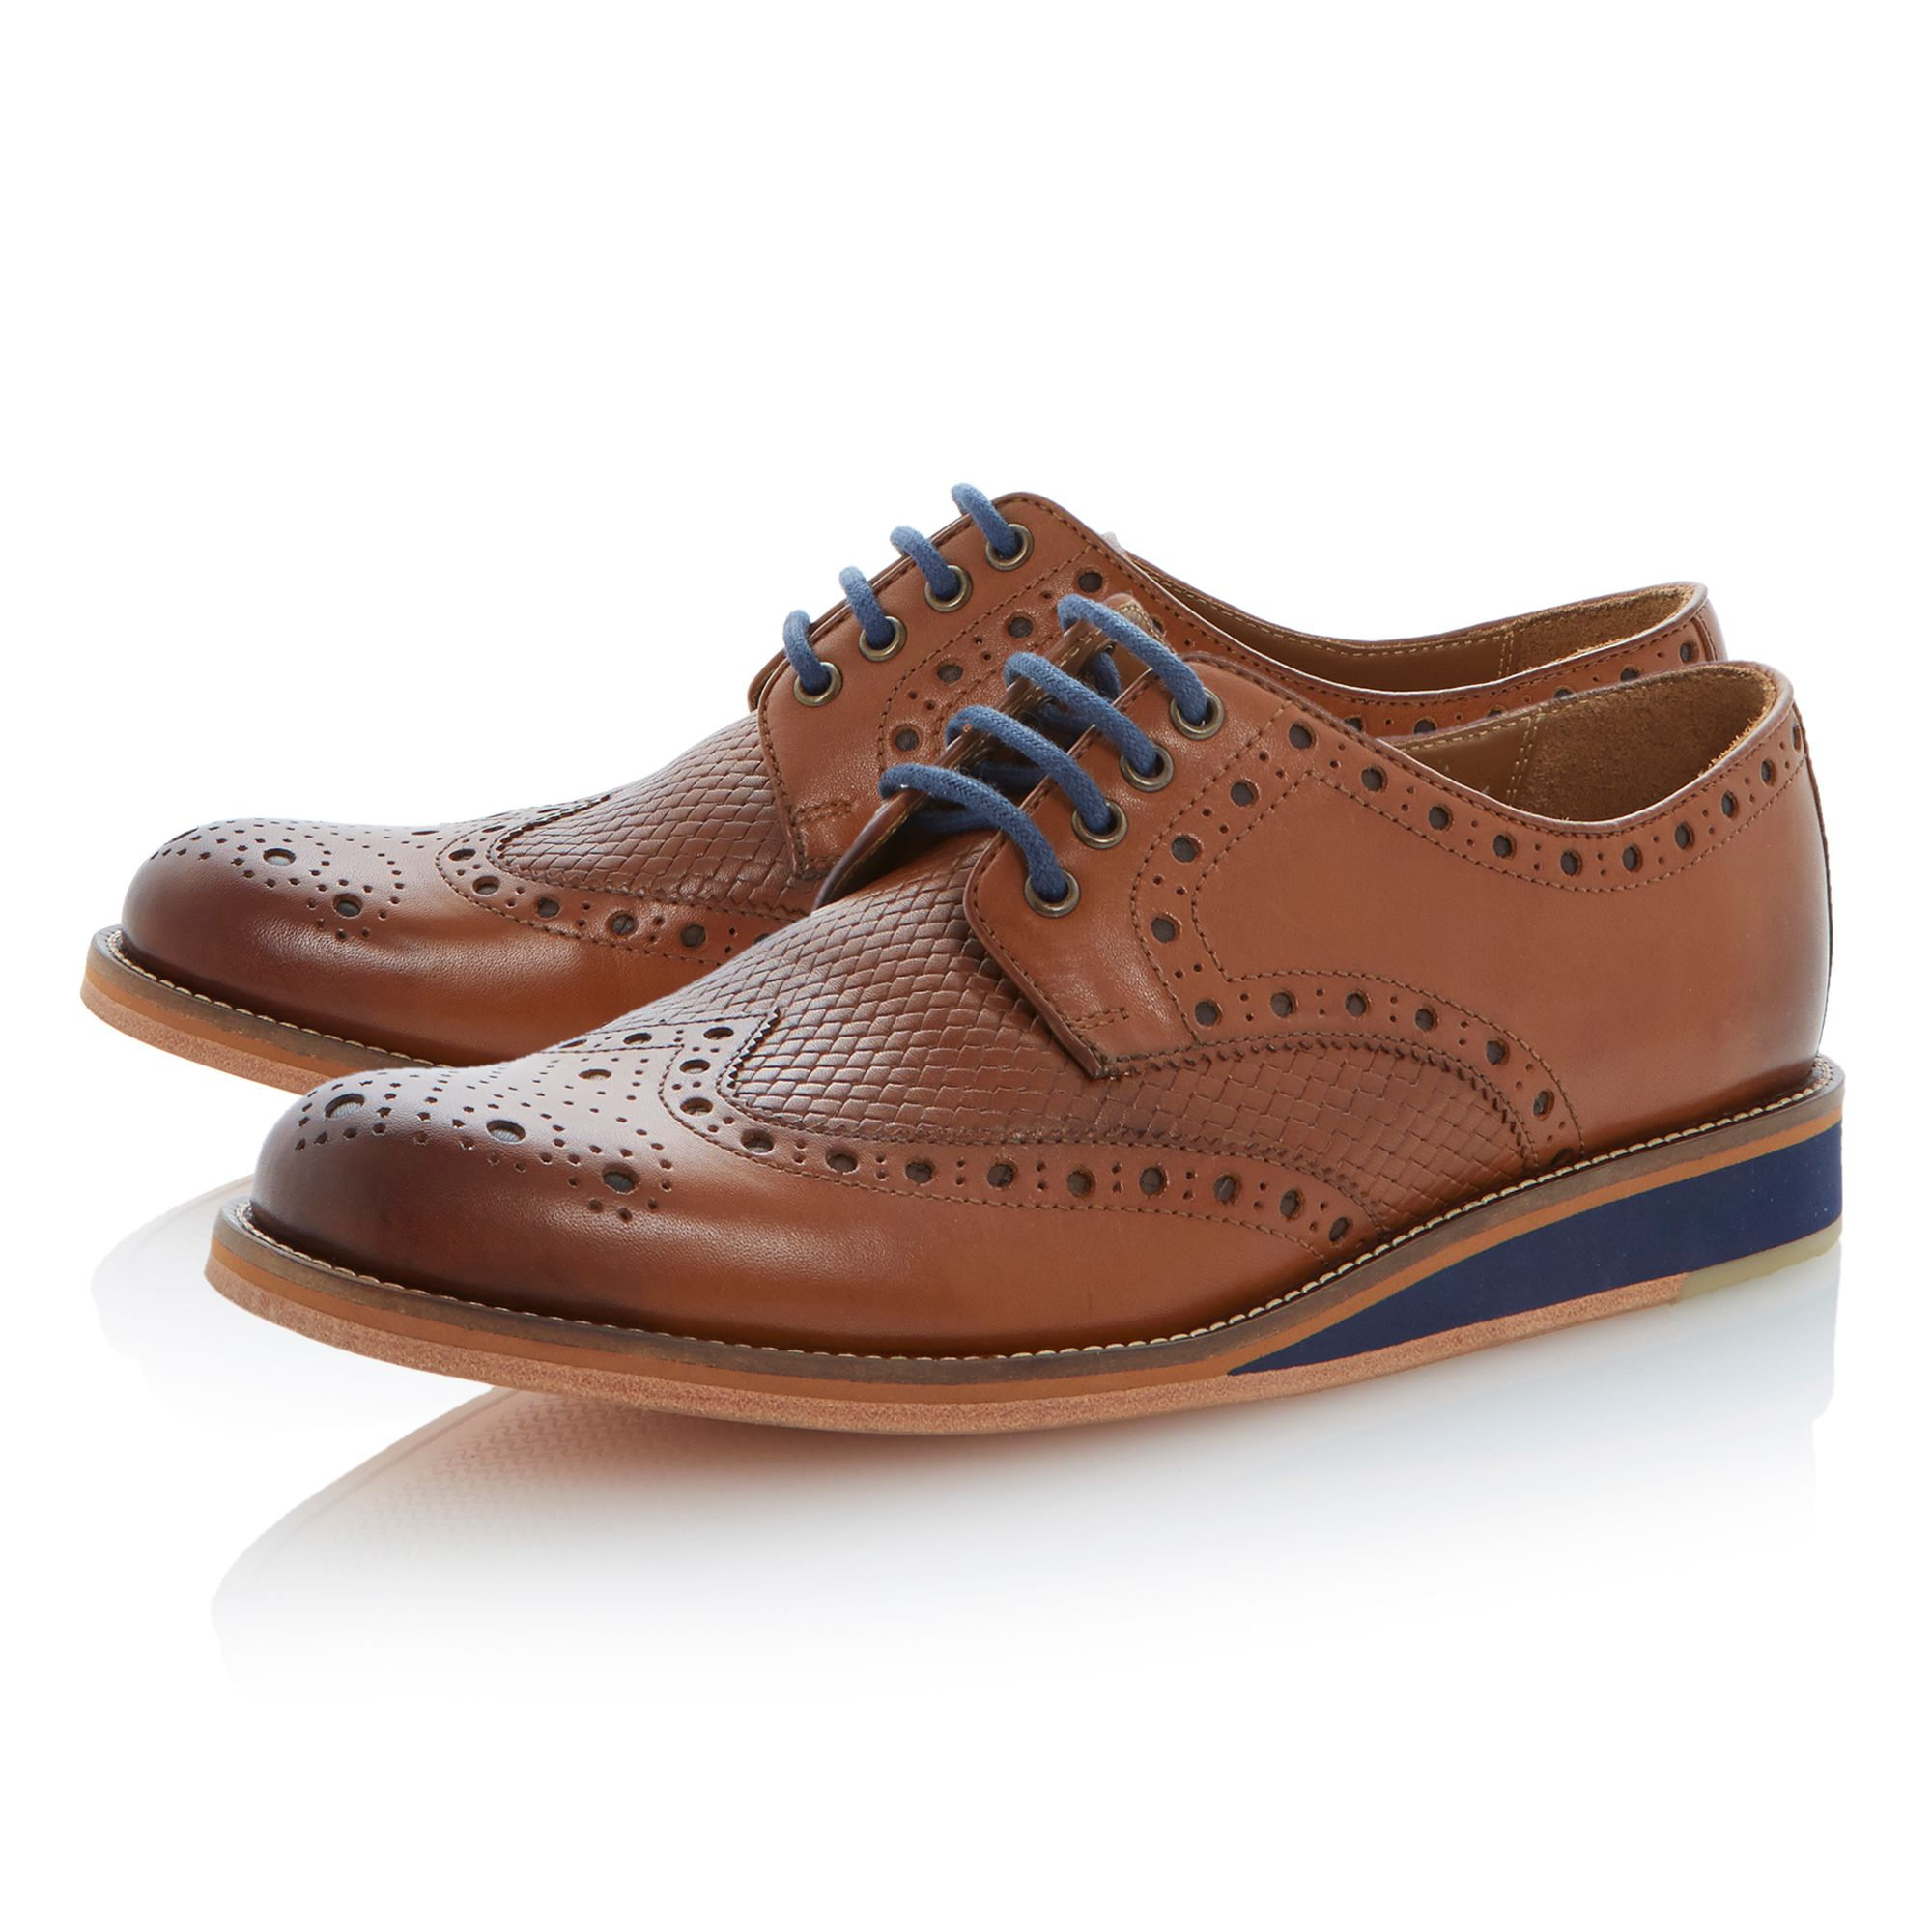 Brock lace up wedge woven brogues